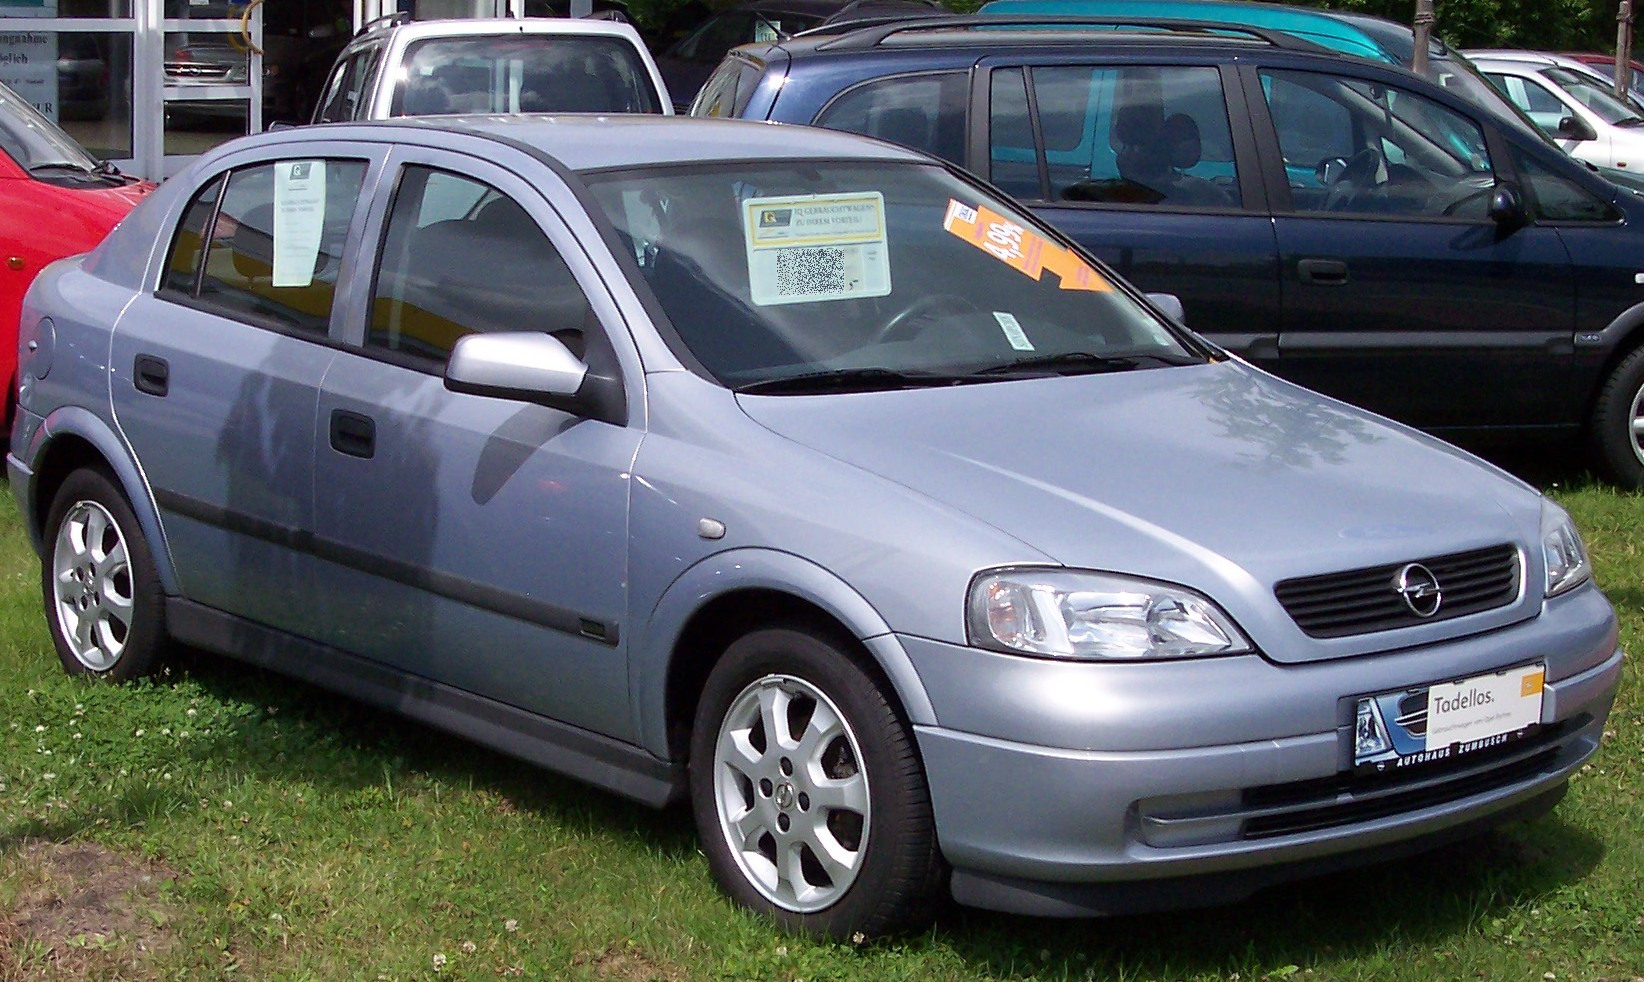 2005 Opel Astra Photos, Informations, Articles - BestCarMag.com